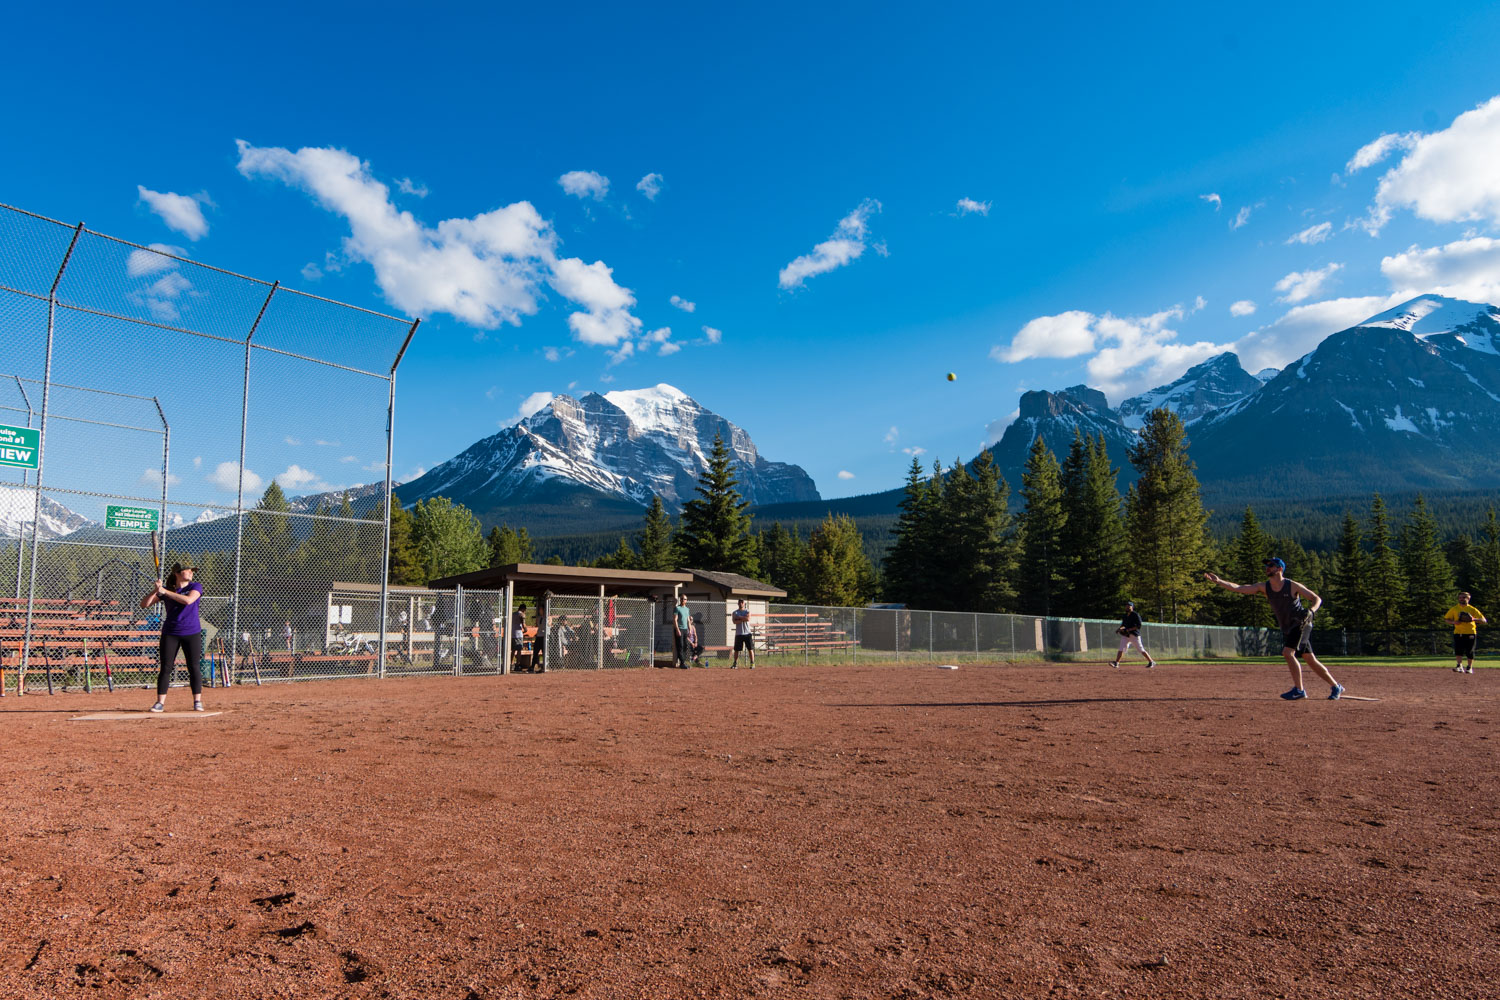 A very picturesque place to hold a softball tournament. Maybe the highest softball tournament in the world?